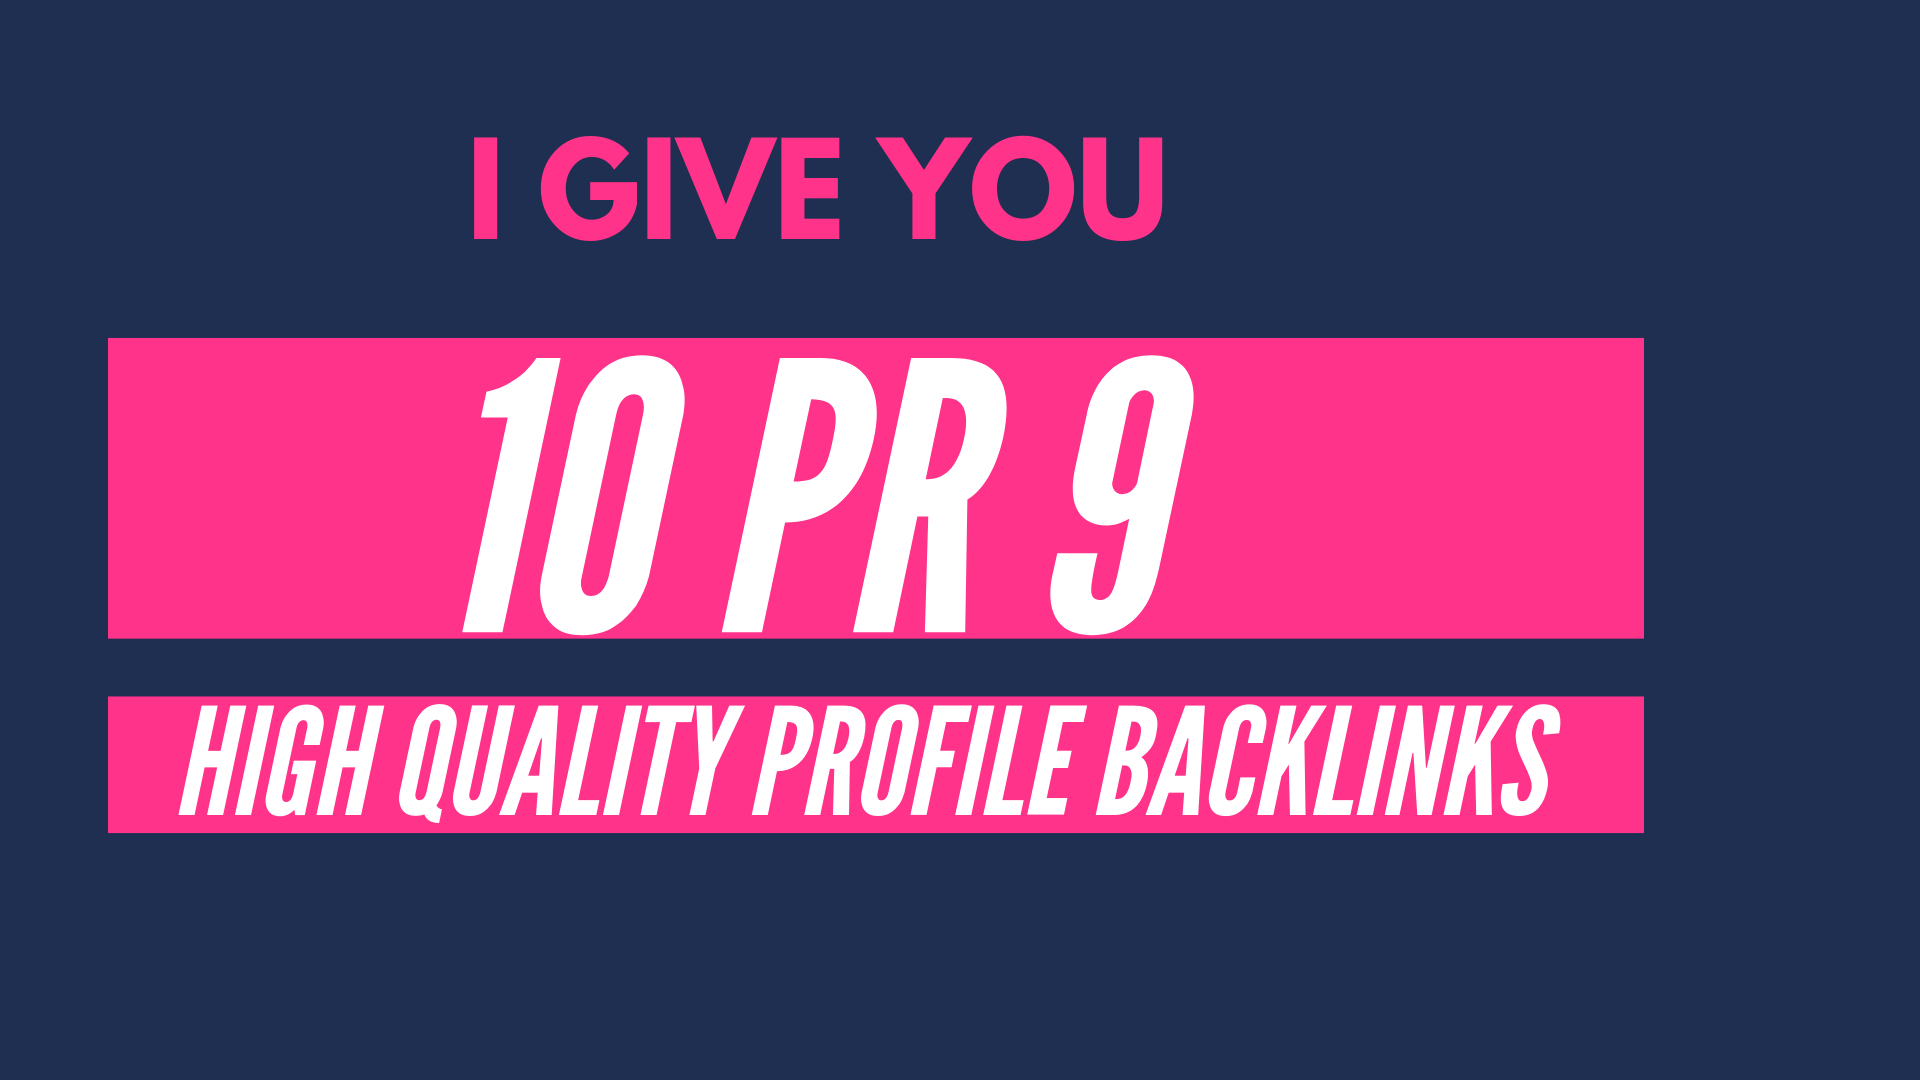 I Give You 10 Pr 9 High Quality Profile Backlinks